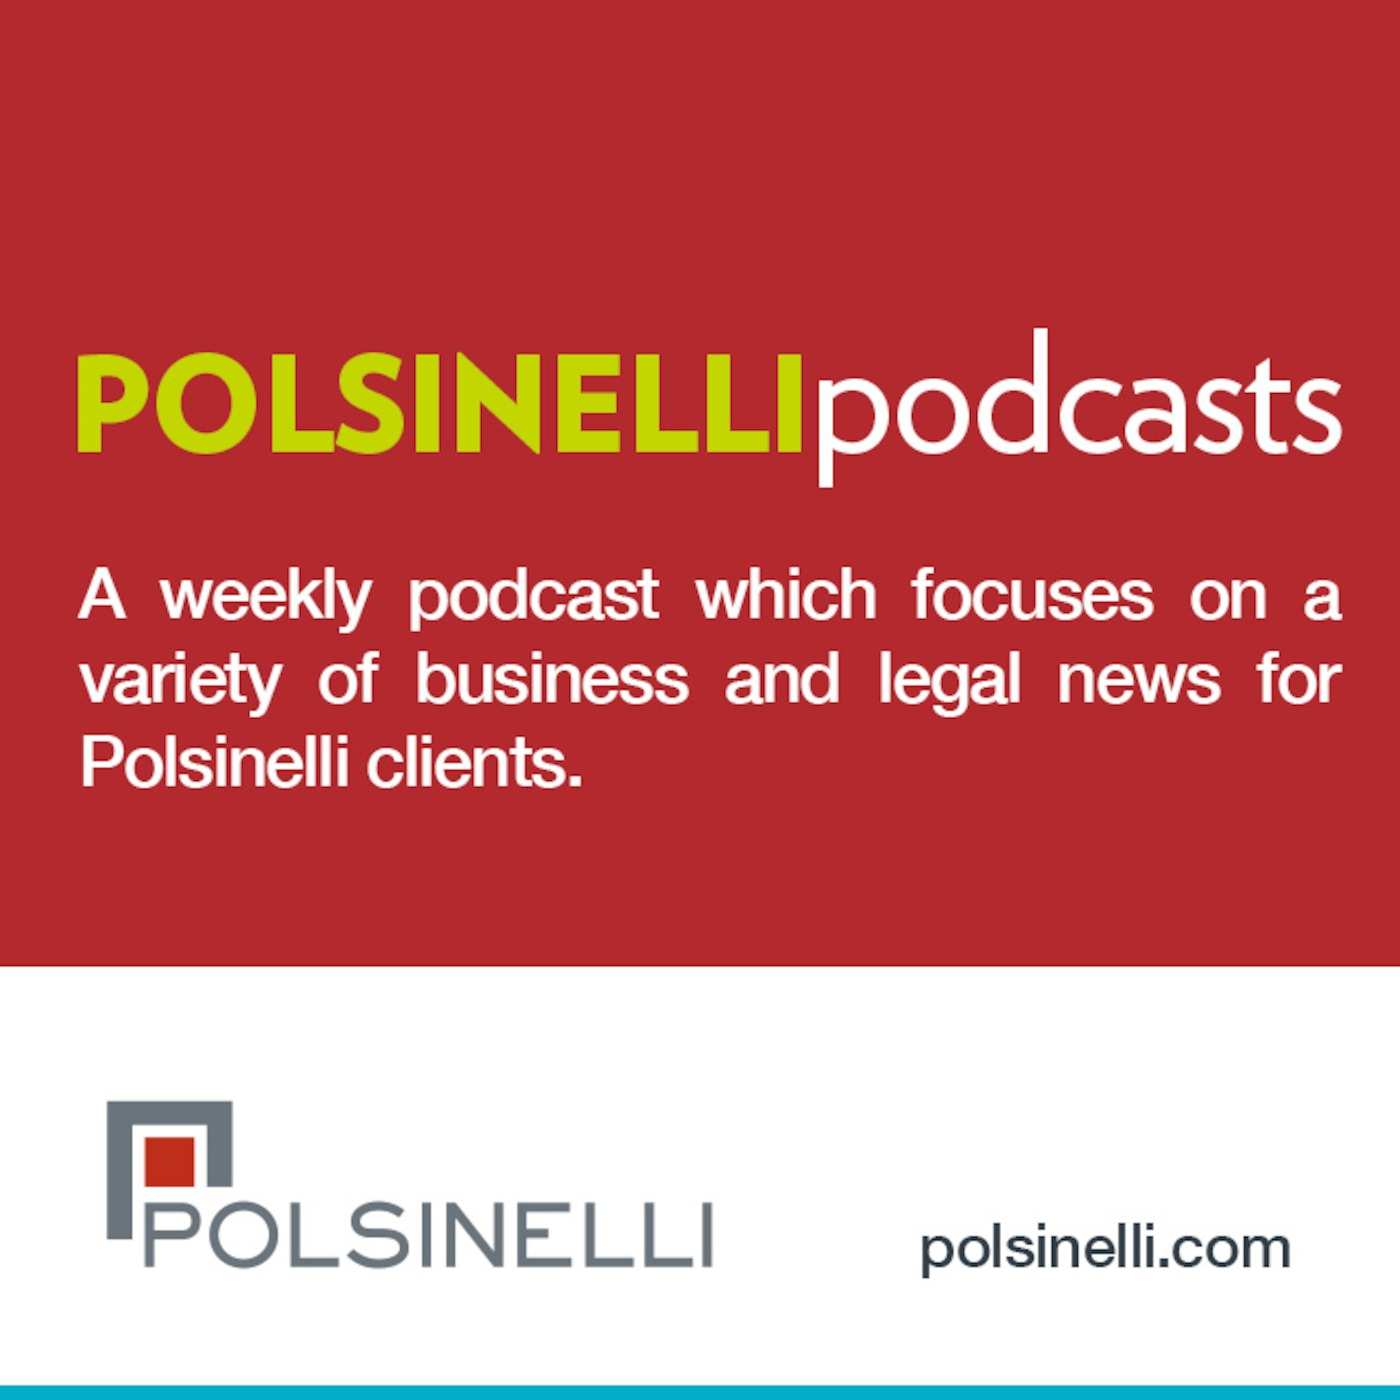 POLSINELLI PODCASTS